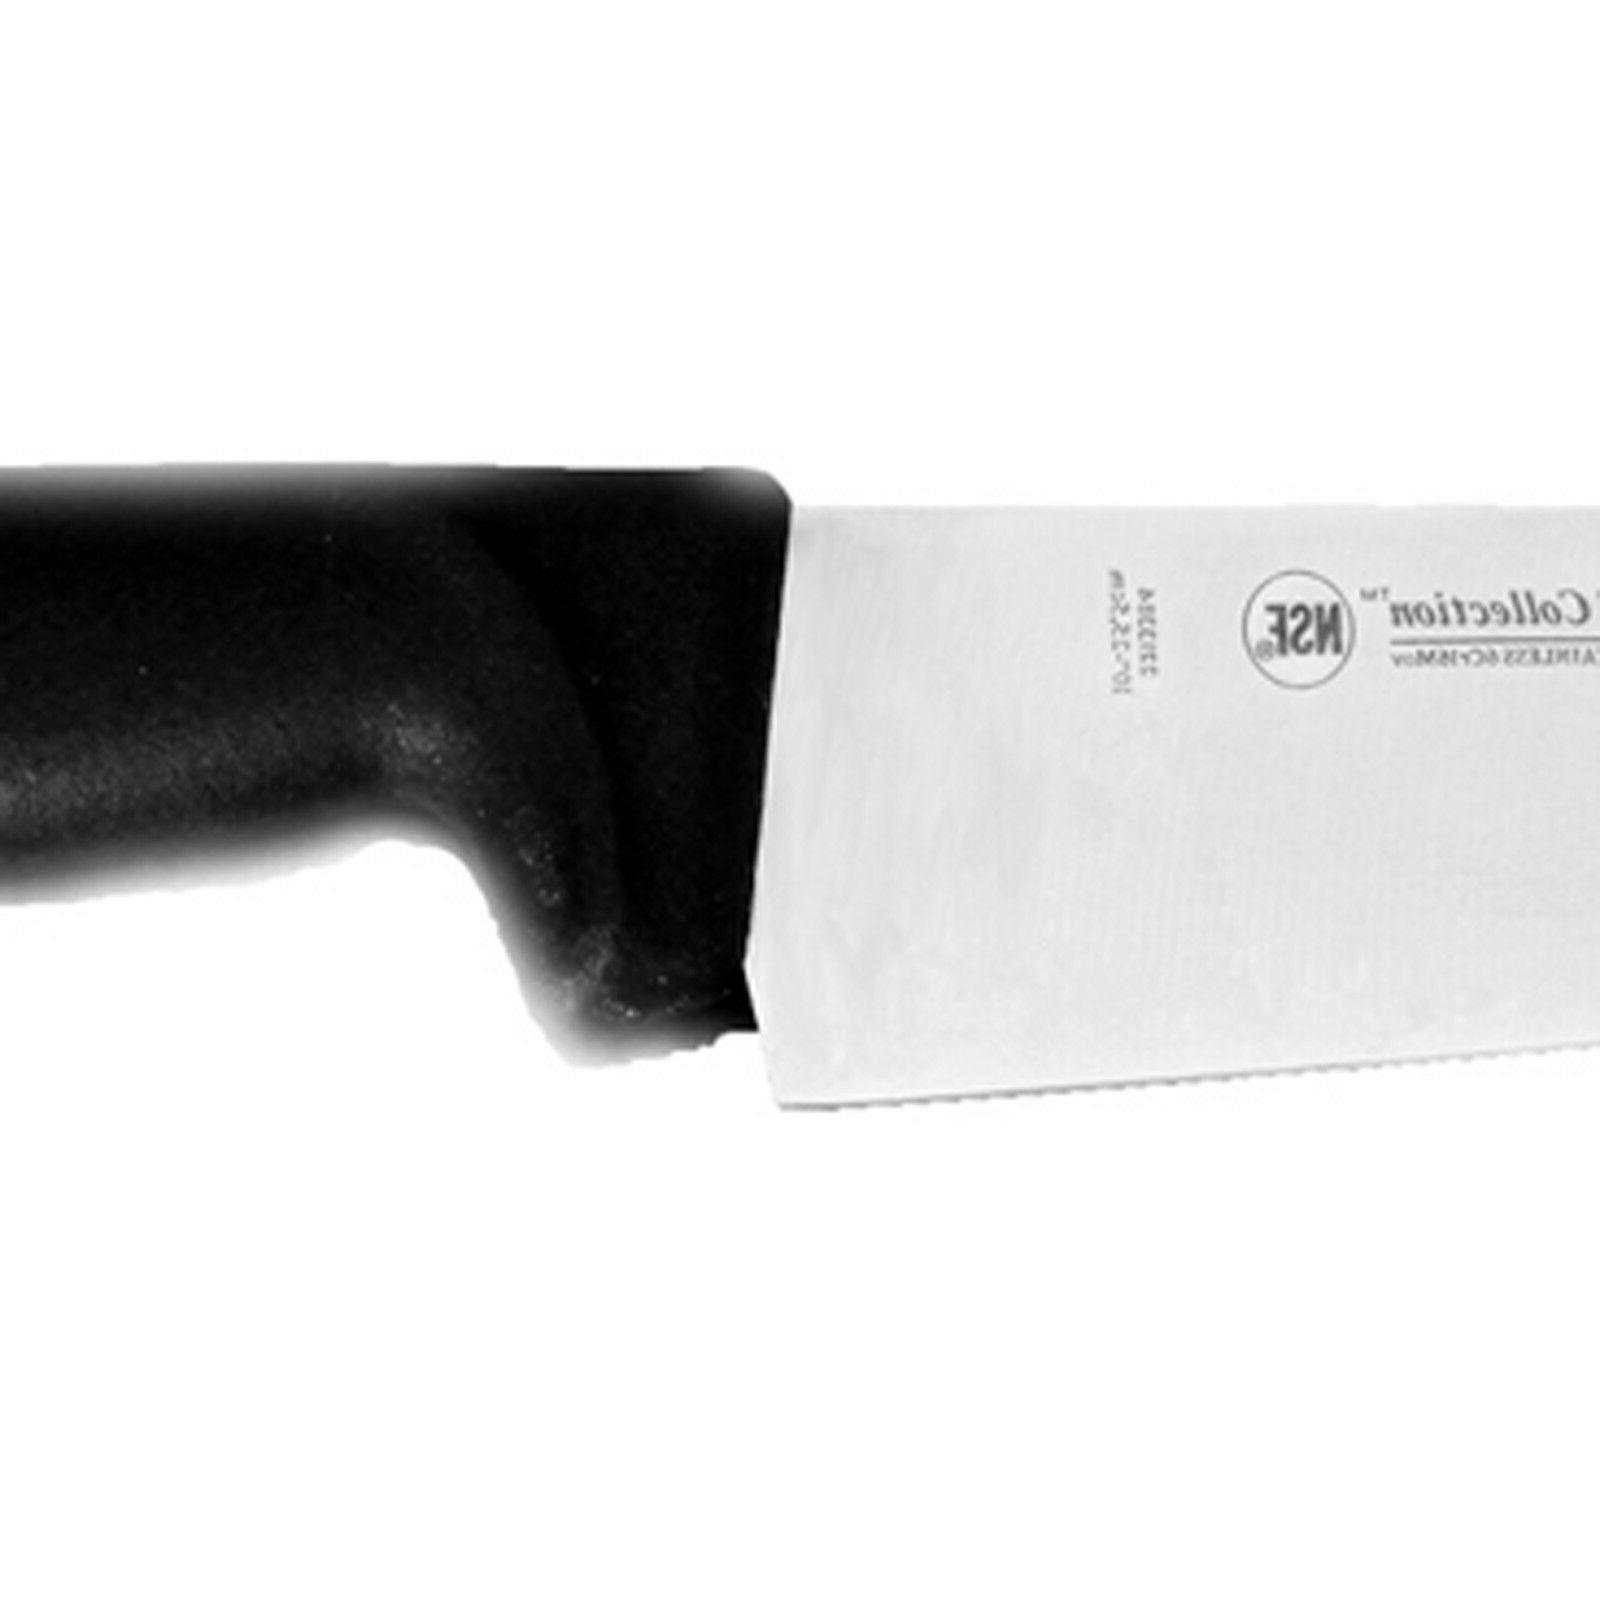 "BergHOFF- Soft Knife 10"" inch set of 2 -"